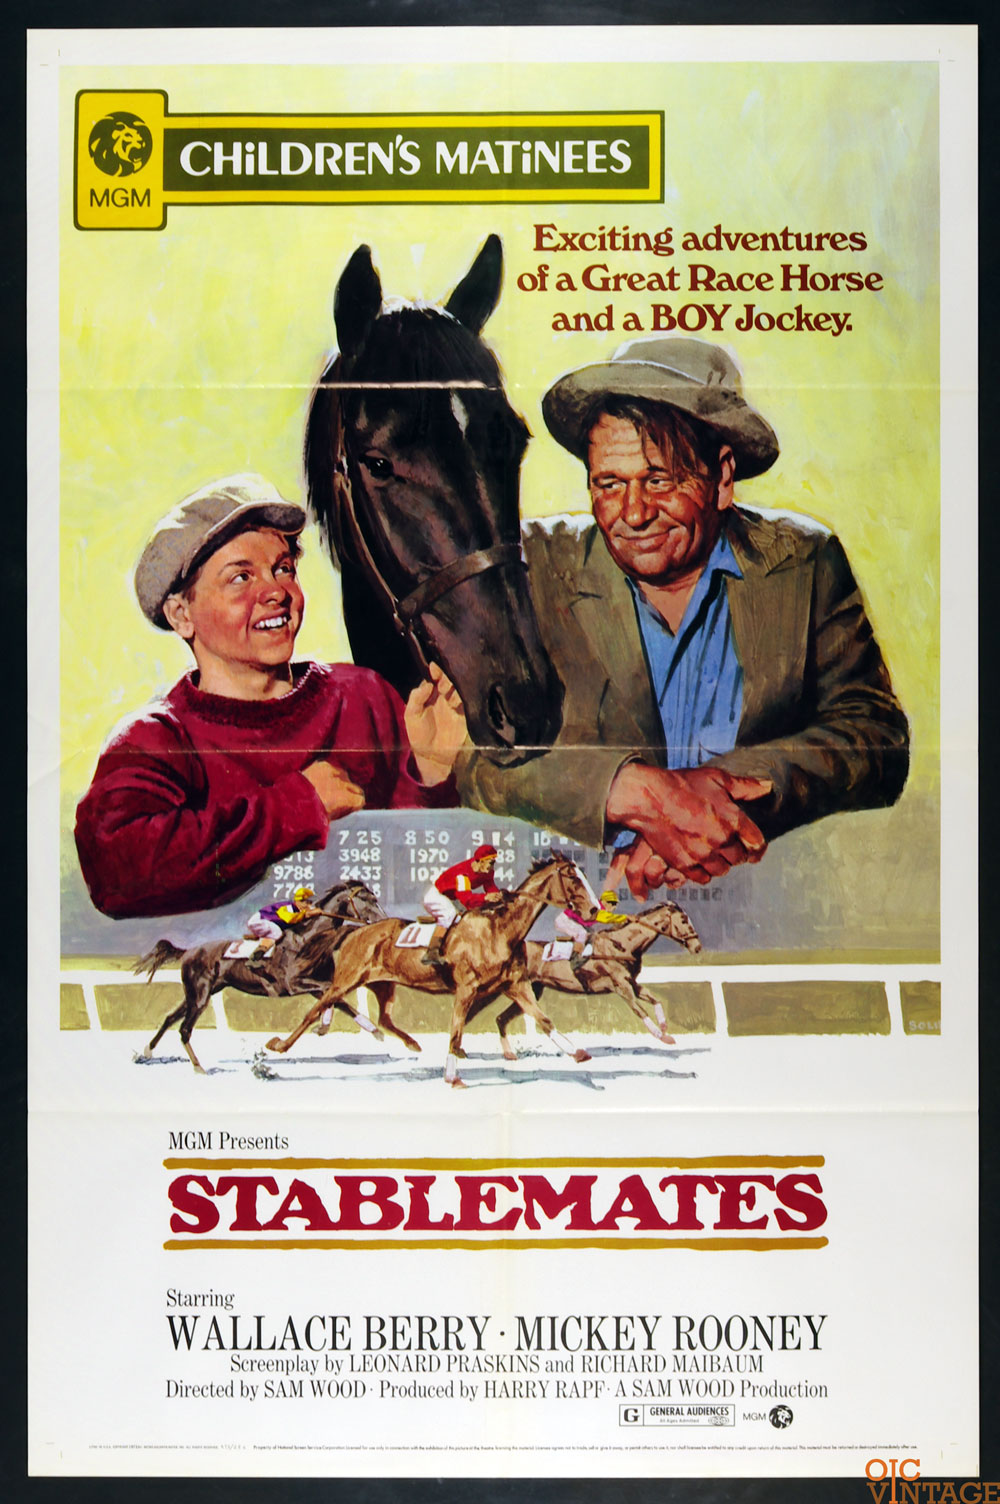 Stablemates Movie Poster R1973 Mickey Rooney Wallace Beery 27 x 41 1 Sheet